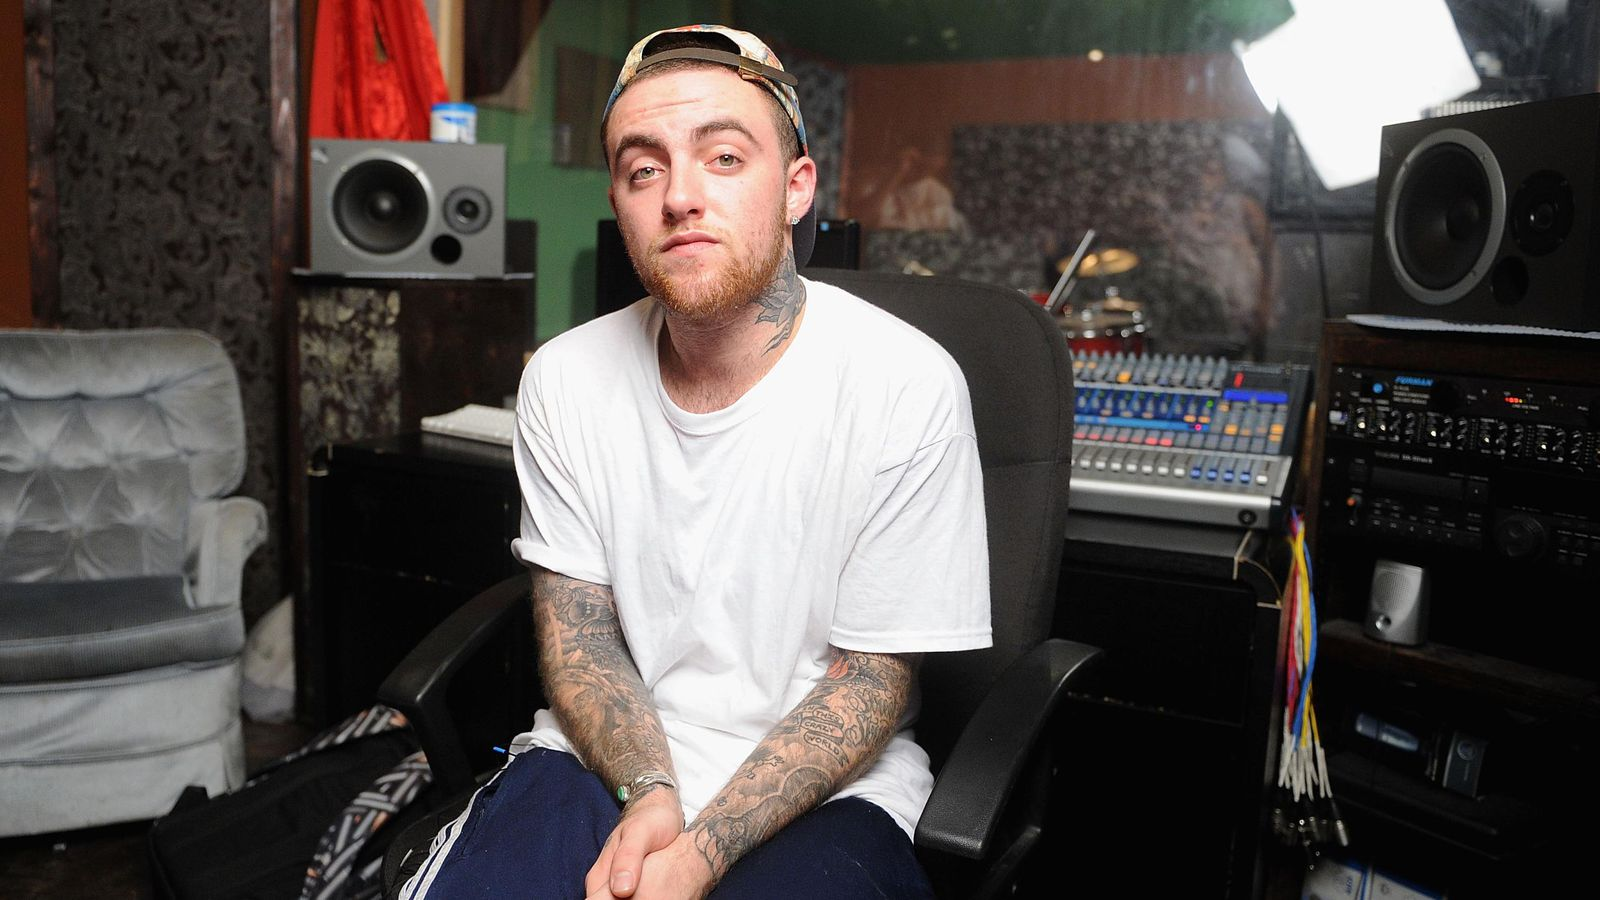 Mac Miller S Hard Work Rise Of The Robots Best Of The 80s Gucci Mane Golden Age Of Musicredef